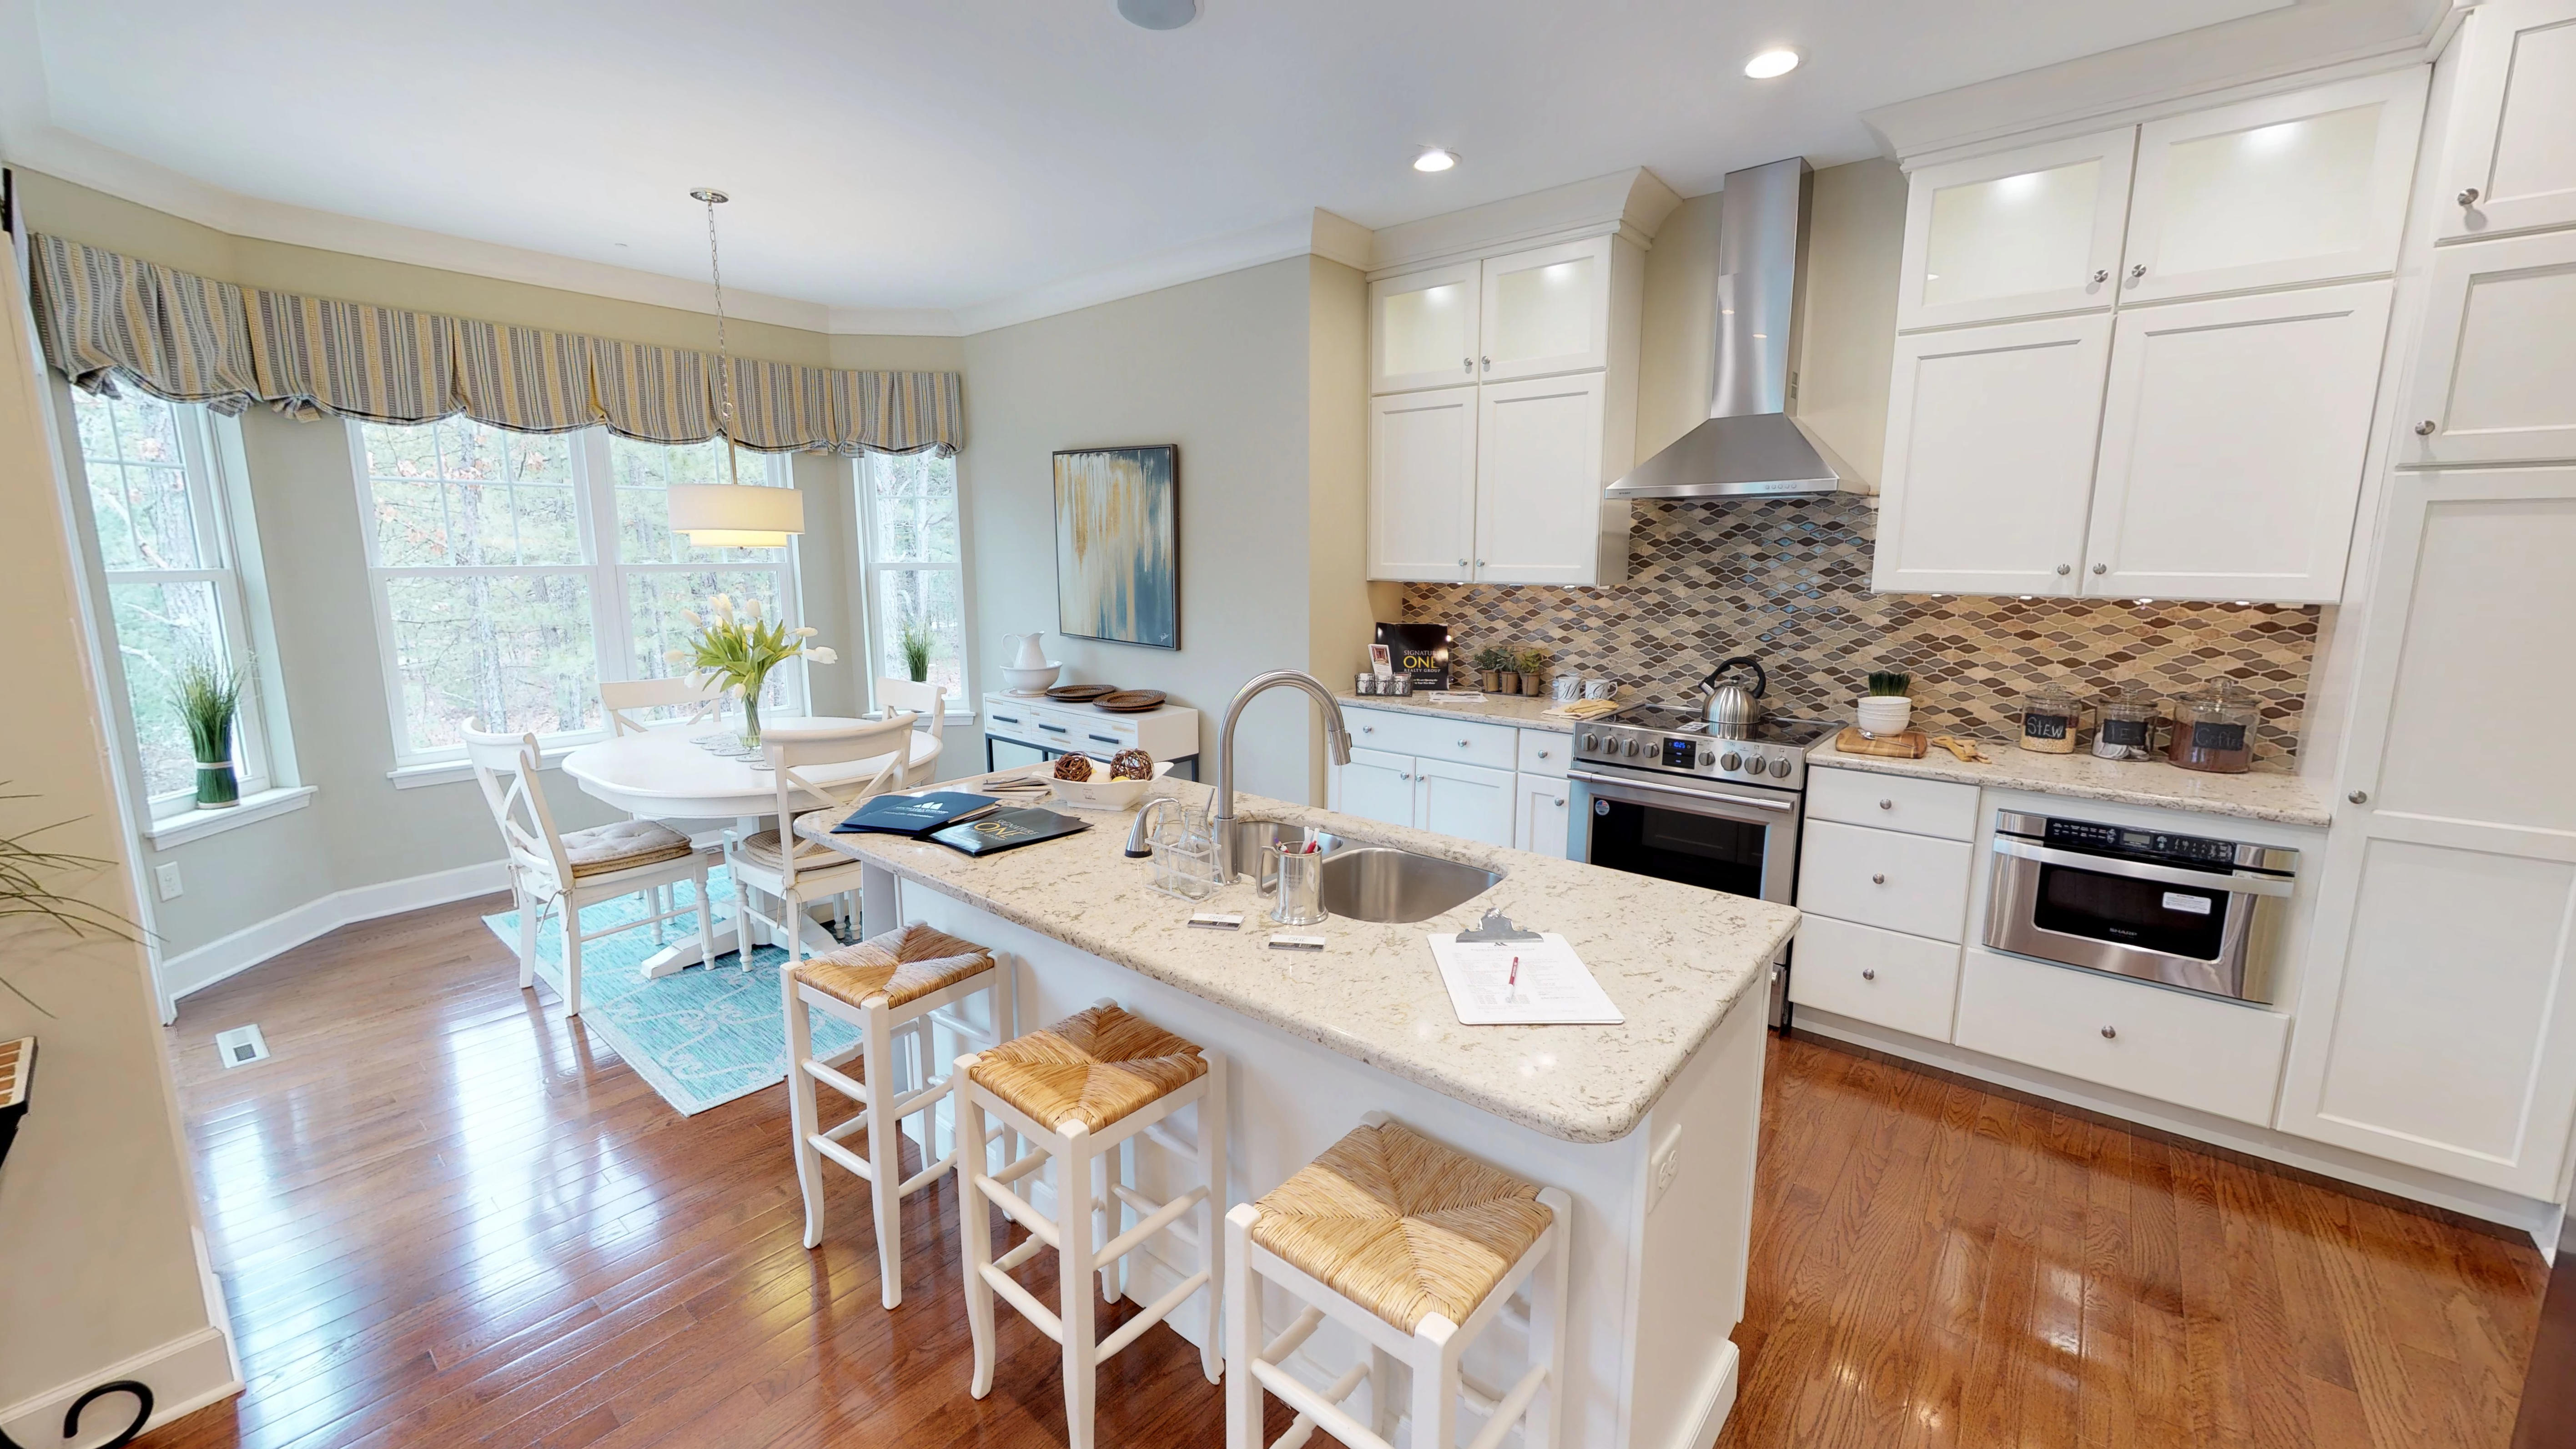 Kitchen and Dining area with an island, white cabinets, quartz counters and hardwood floors